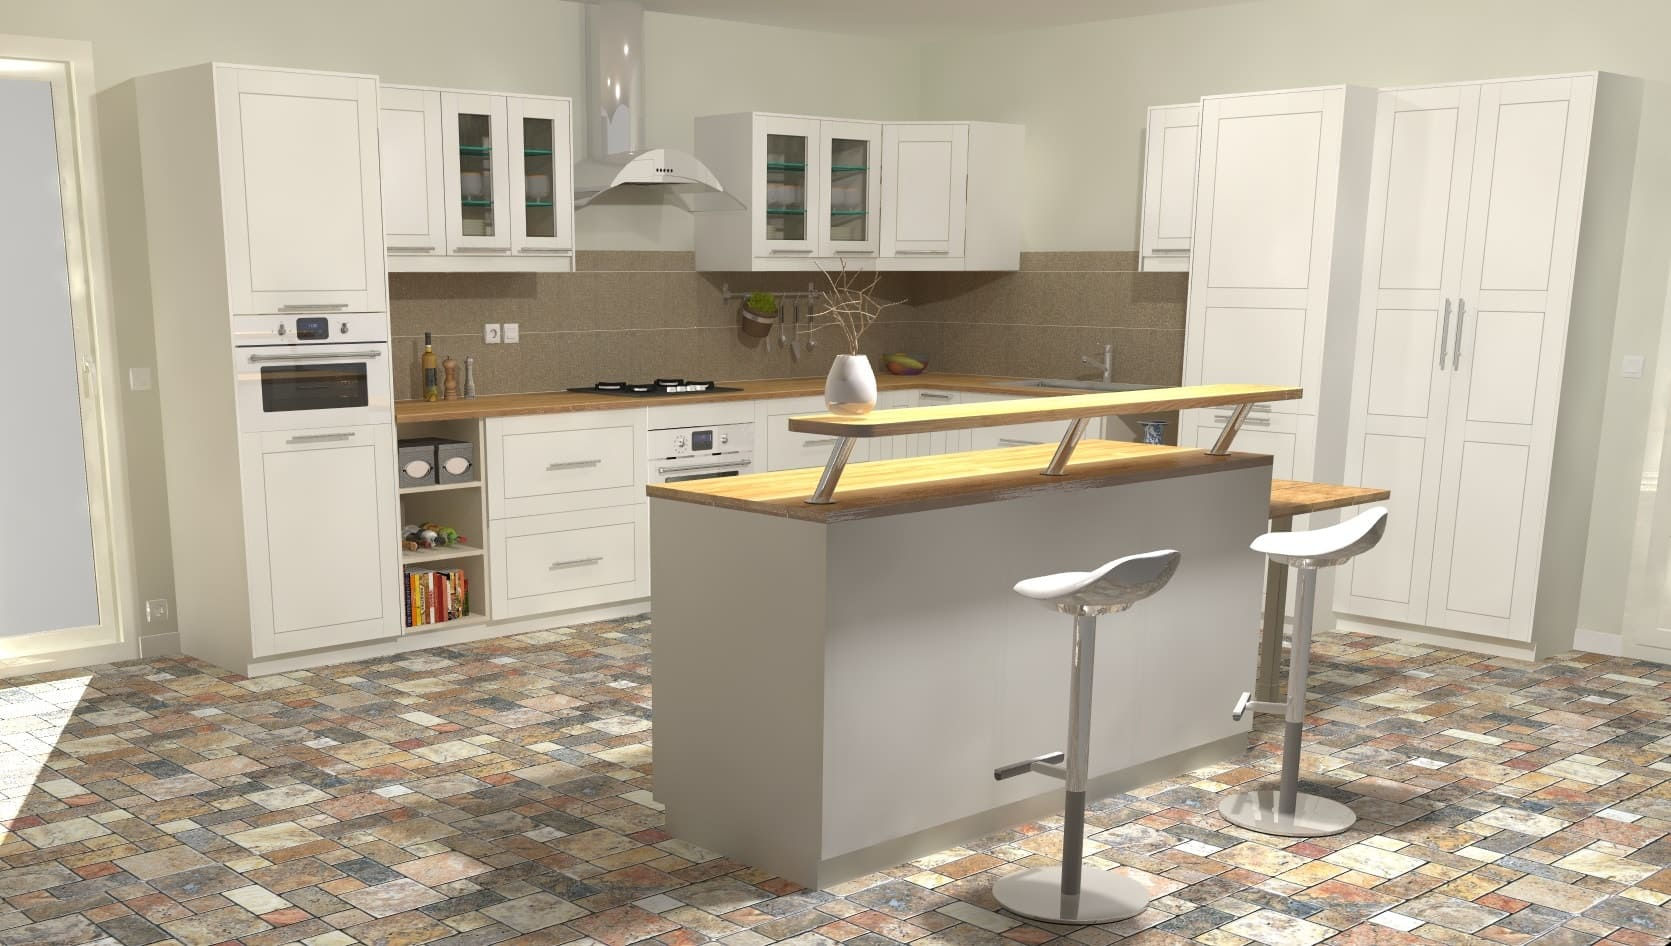 Cuisine Ikea Sketchup Extension Sketchup Click Kitchen 2 Dynamique Agencement